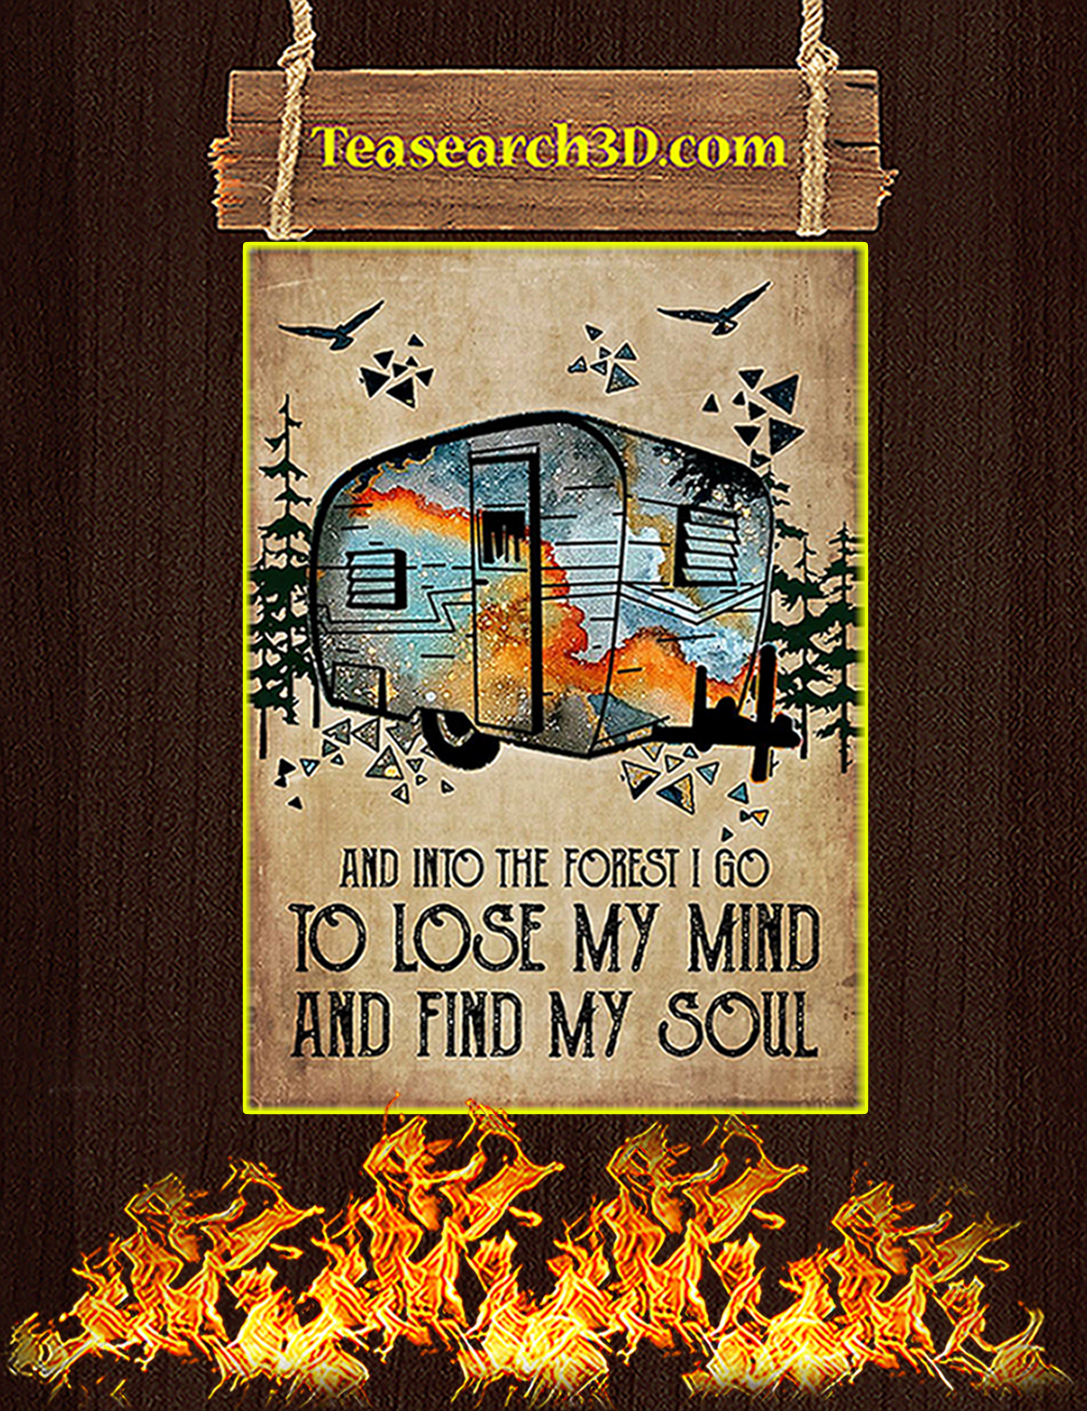 Camping and into the forest go to lose poster A2